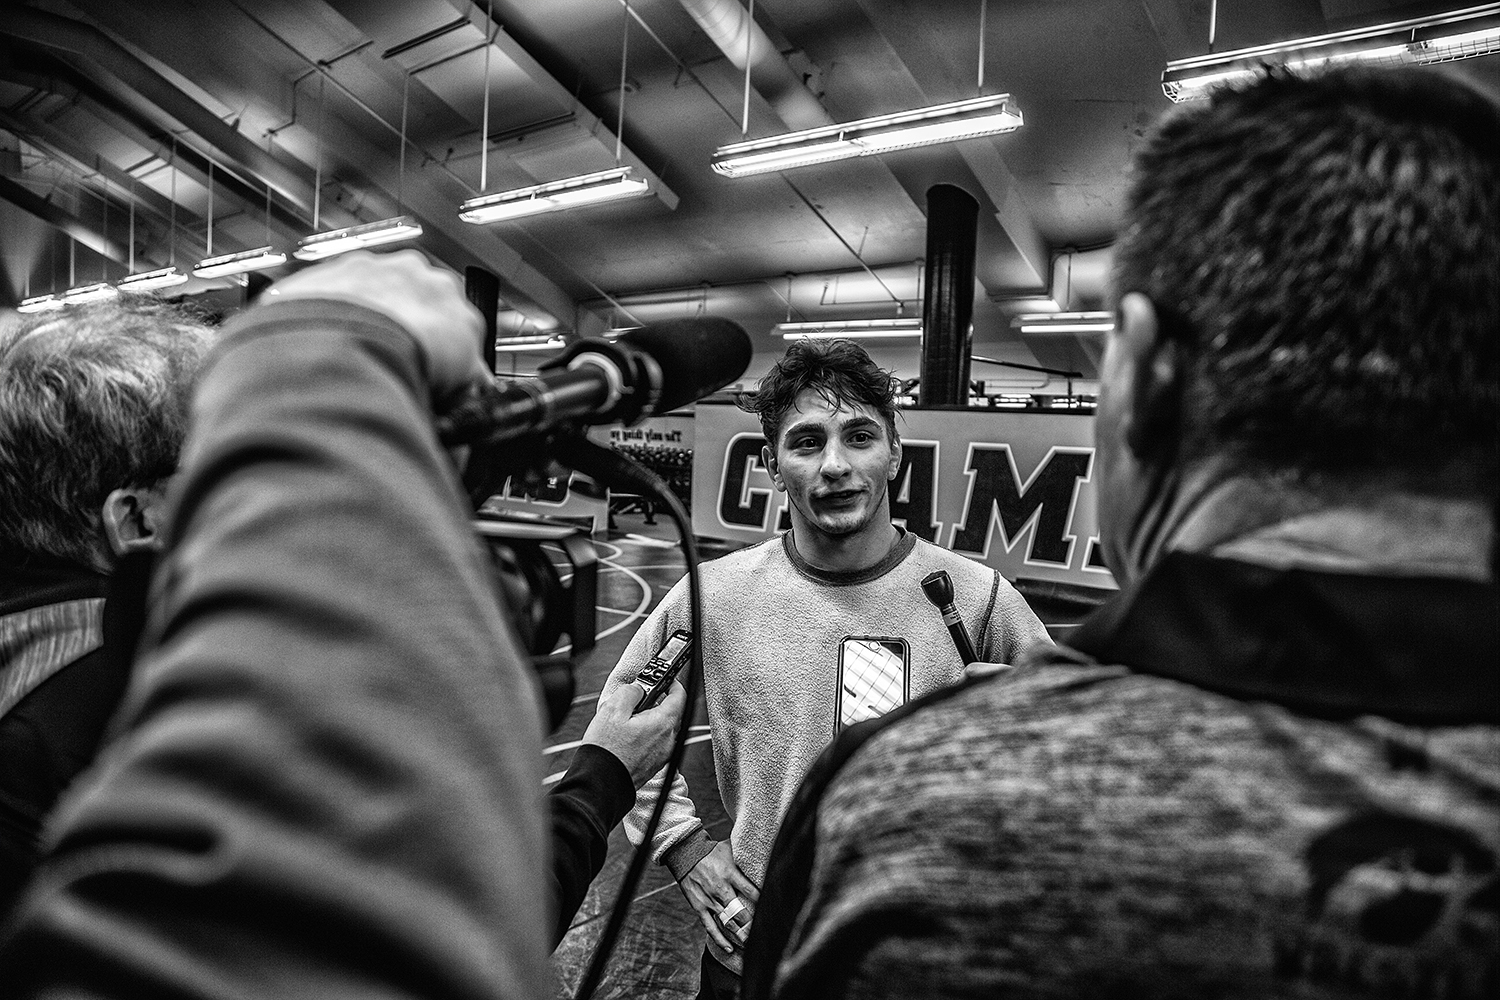 Austin DeSanto answers questions during Wrestling Media Day at the Dan Gable Wrestling Complex on Monday, November 5, 2018. (Shivansh Ahuja/The Daily Iowan)